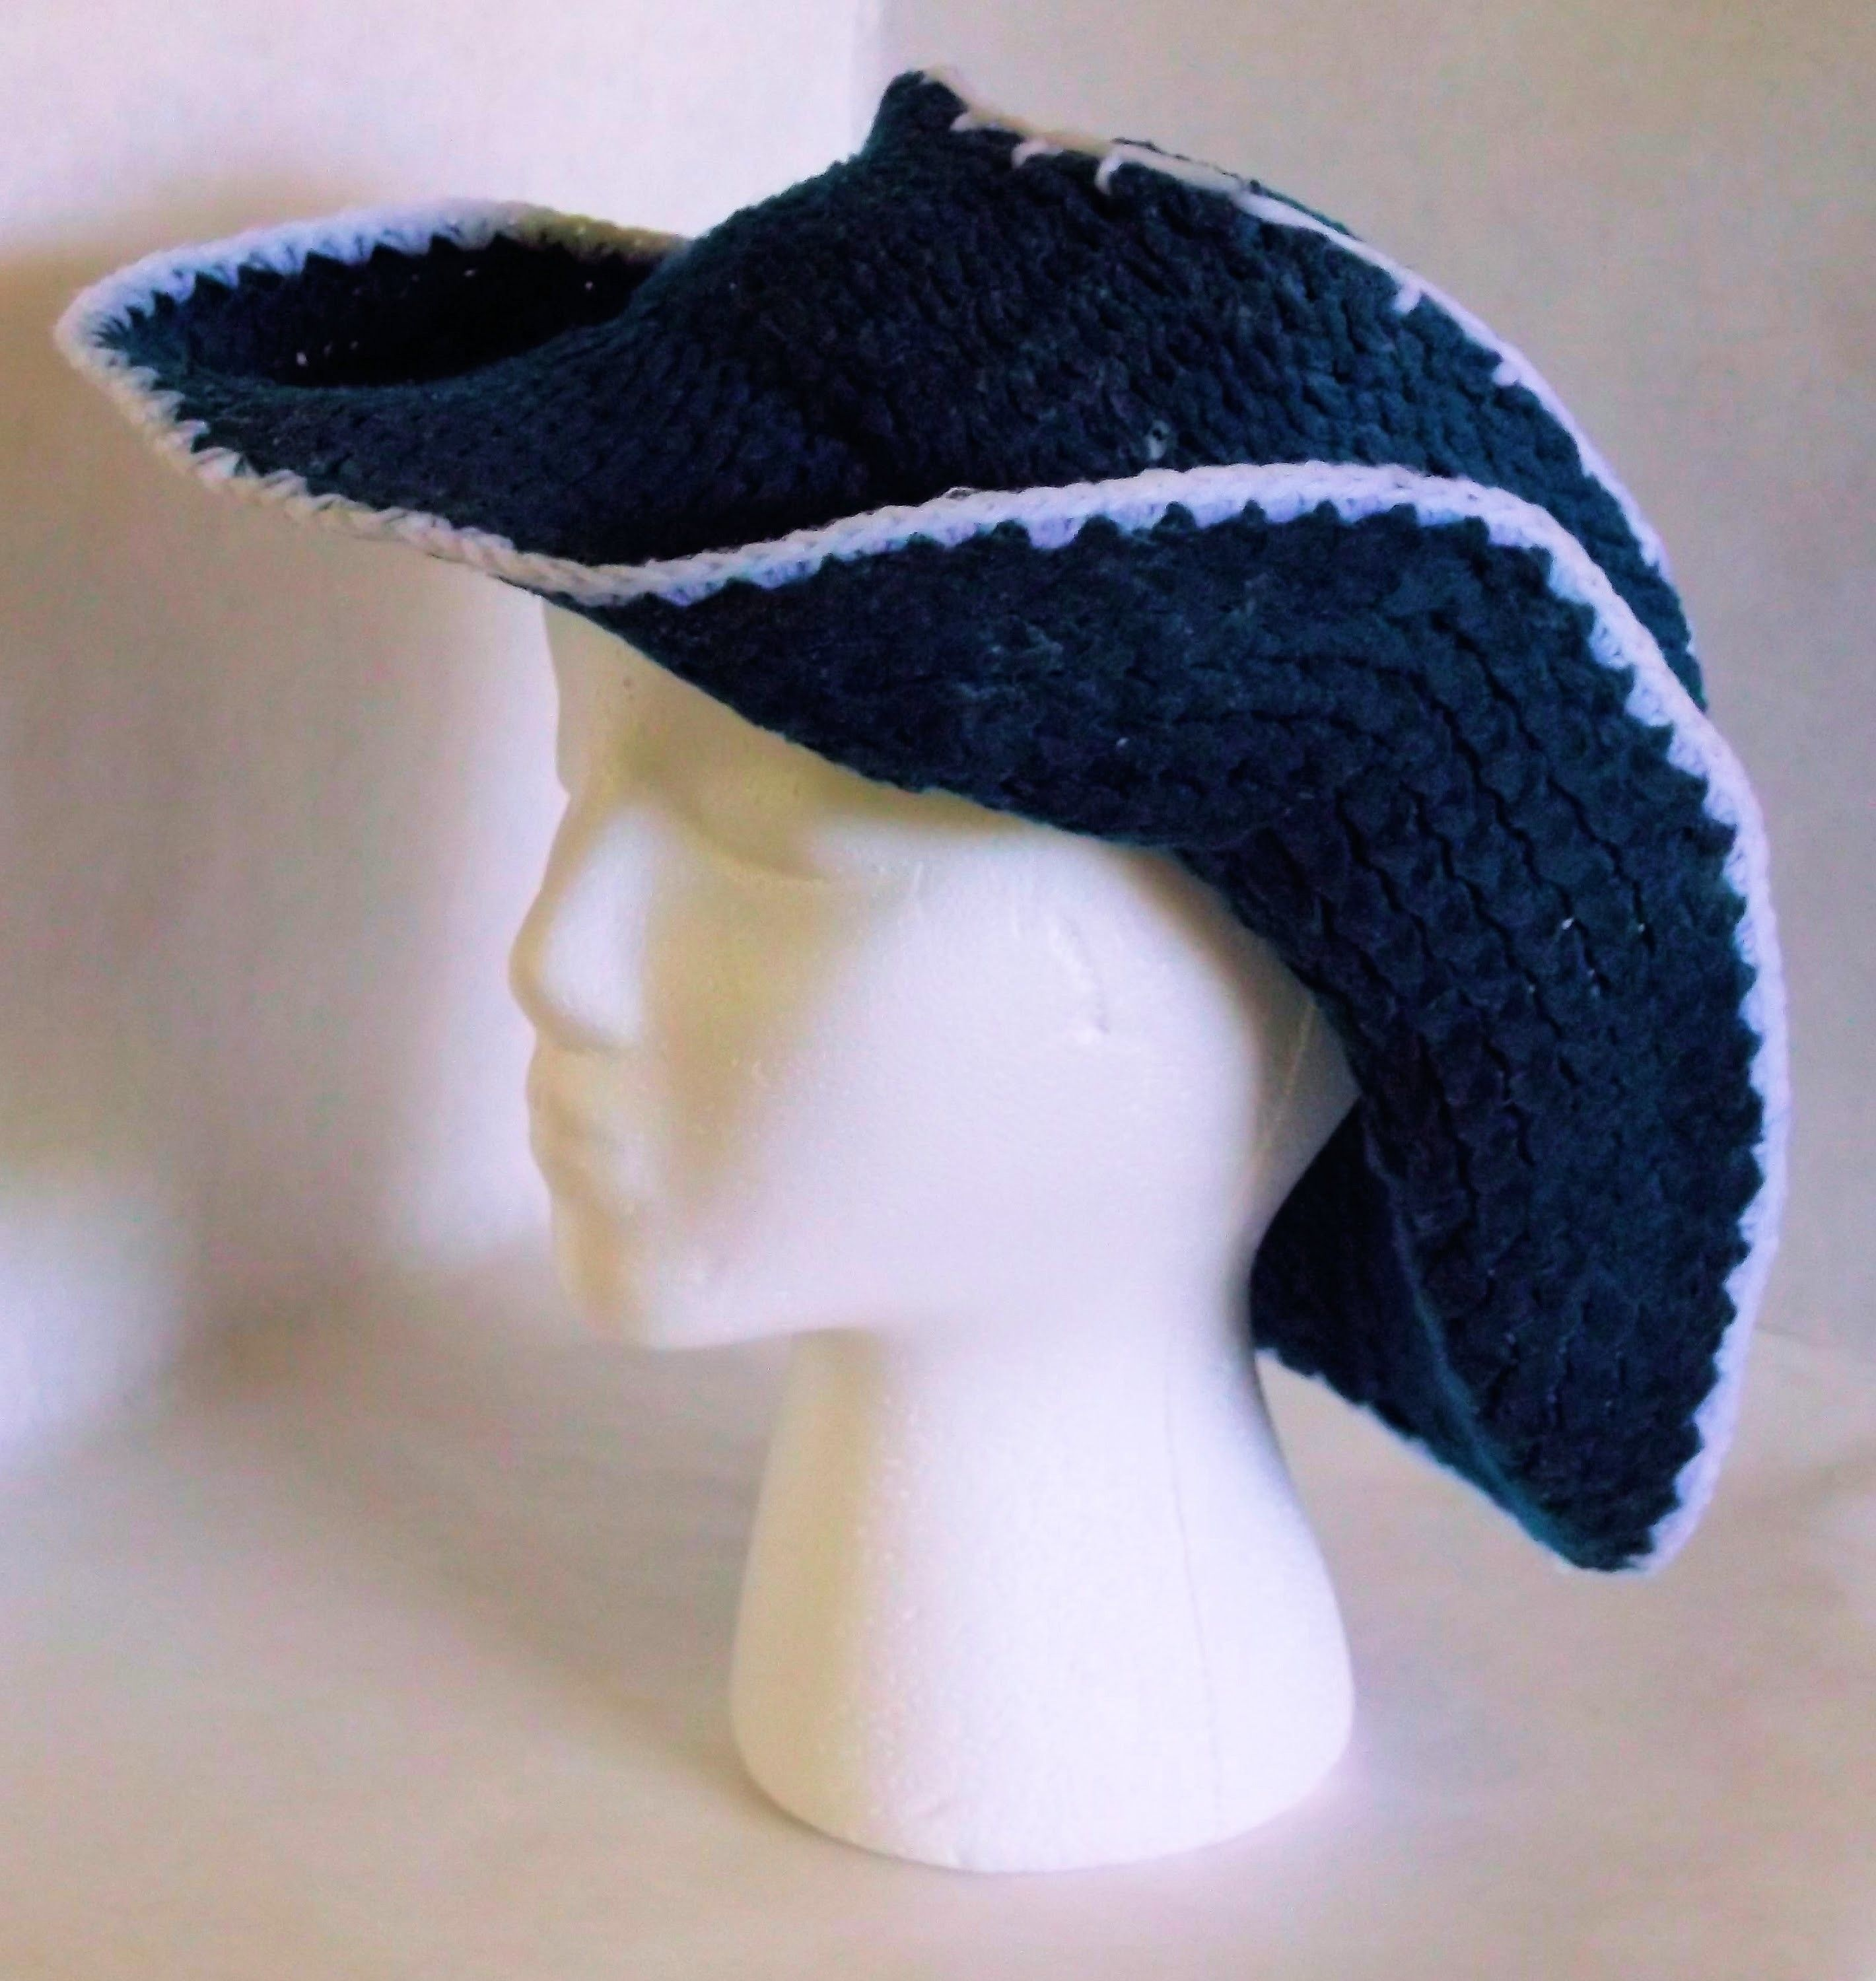 How To Loom Knit a Cowboy Hat | Loom knitting, Knitting ...